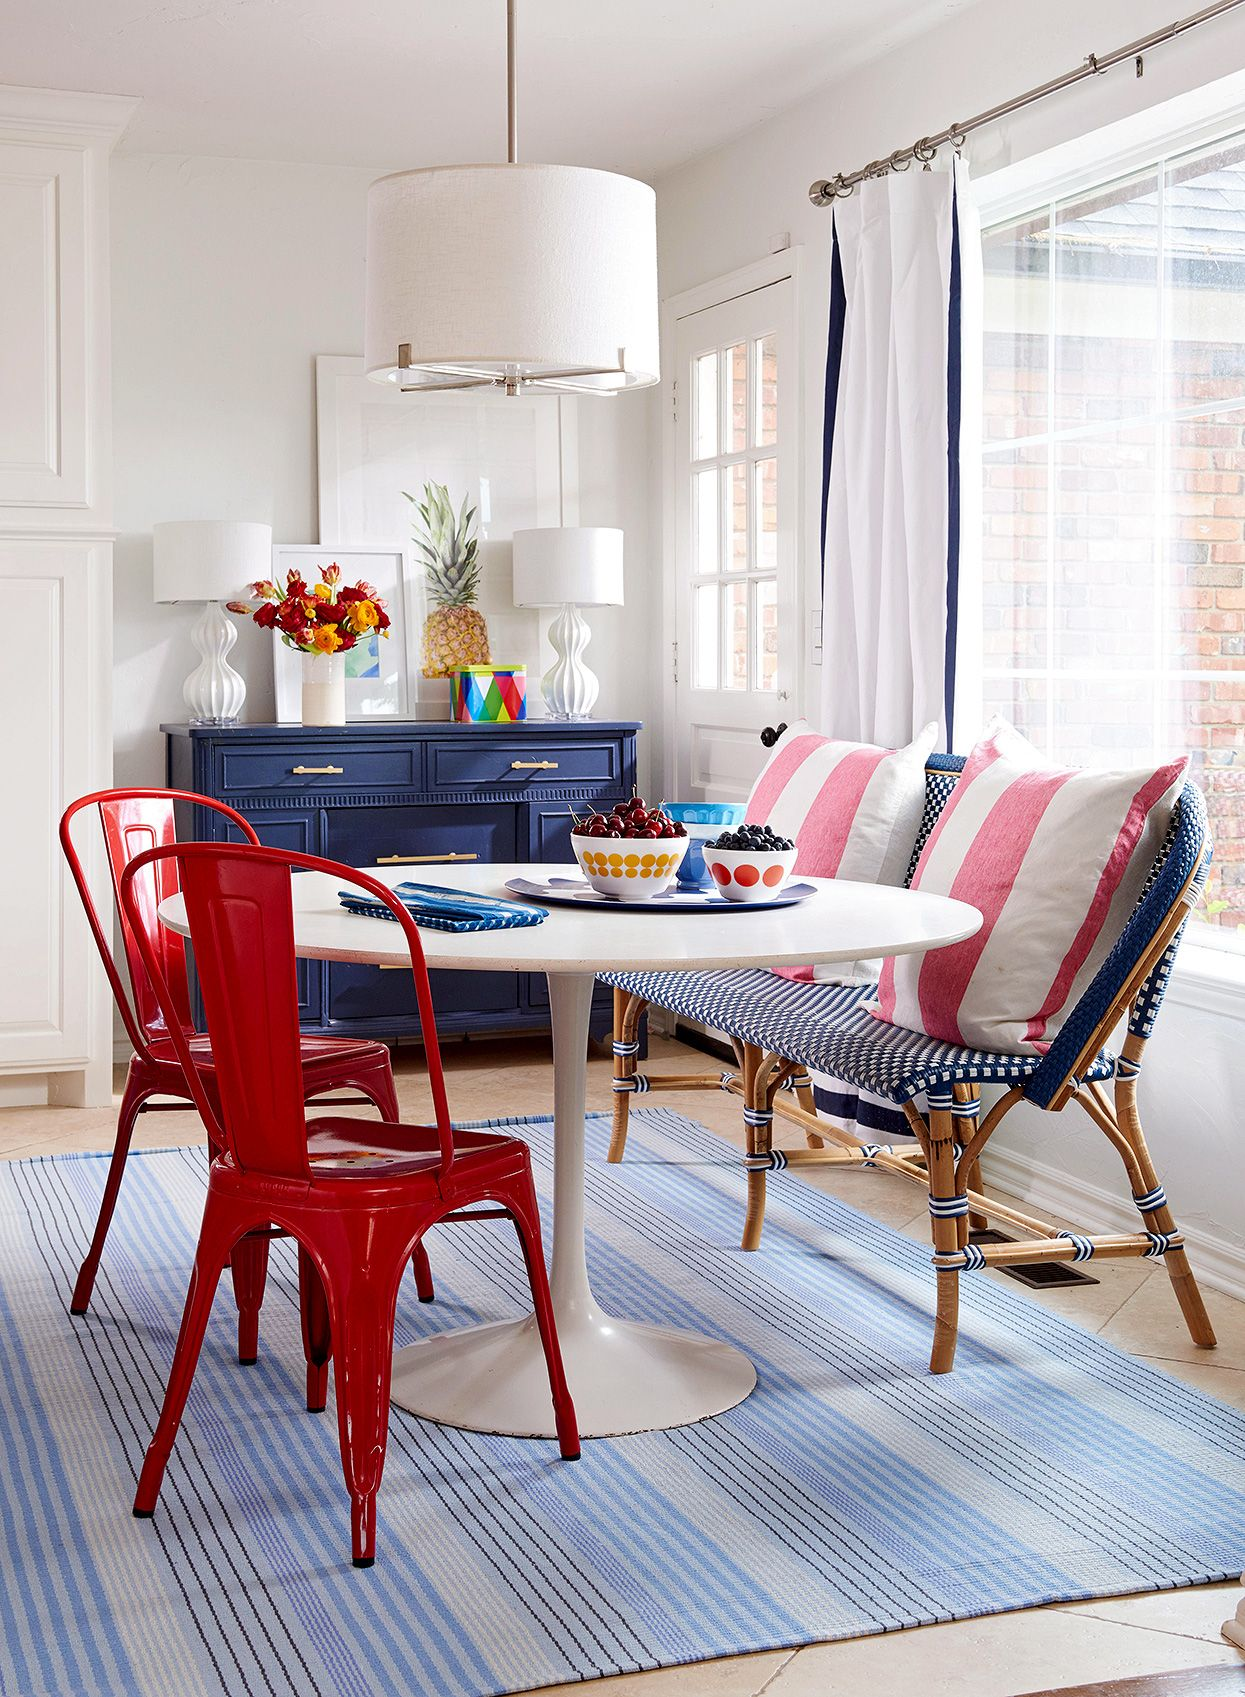 Here Are the Best Ways to Decorate with Red, White, and